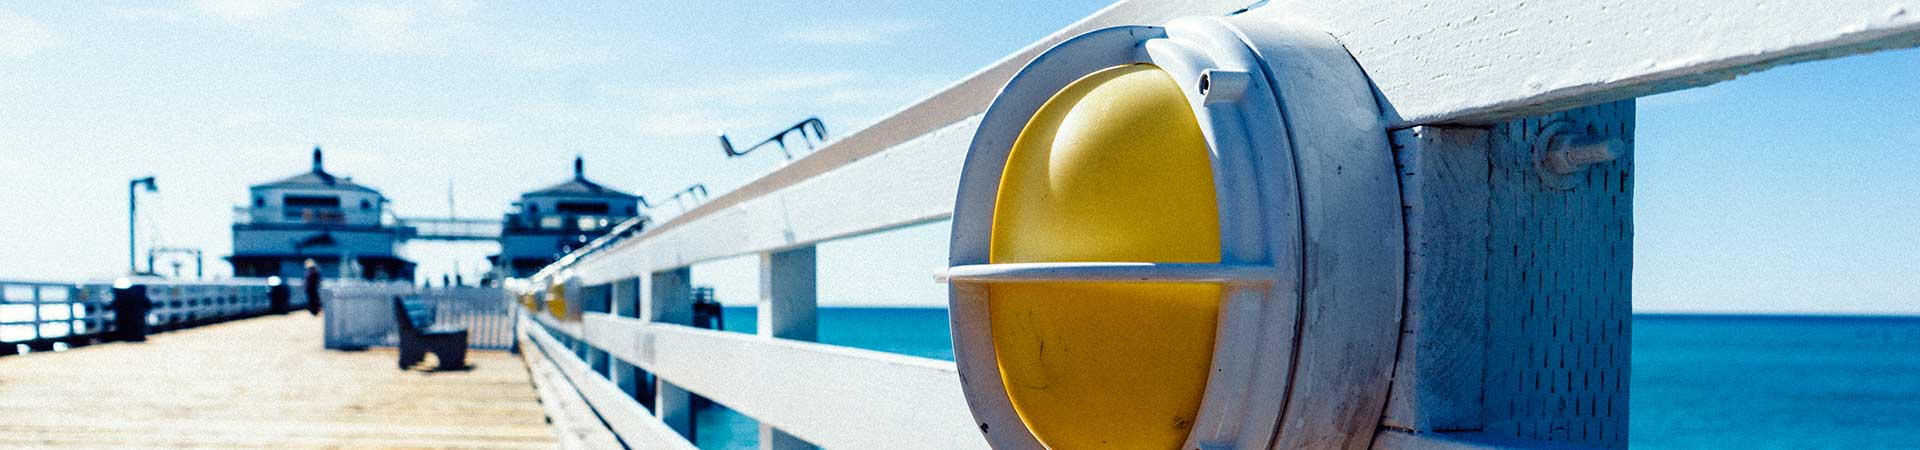 jetty-landing-stage-light-sea-cover